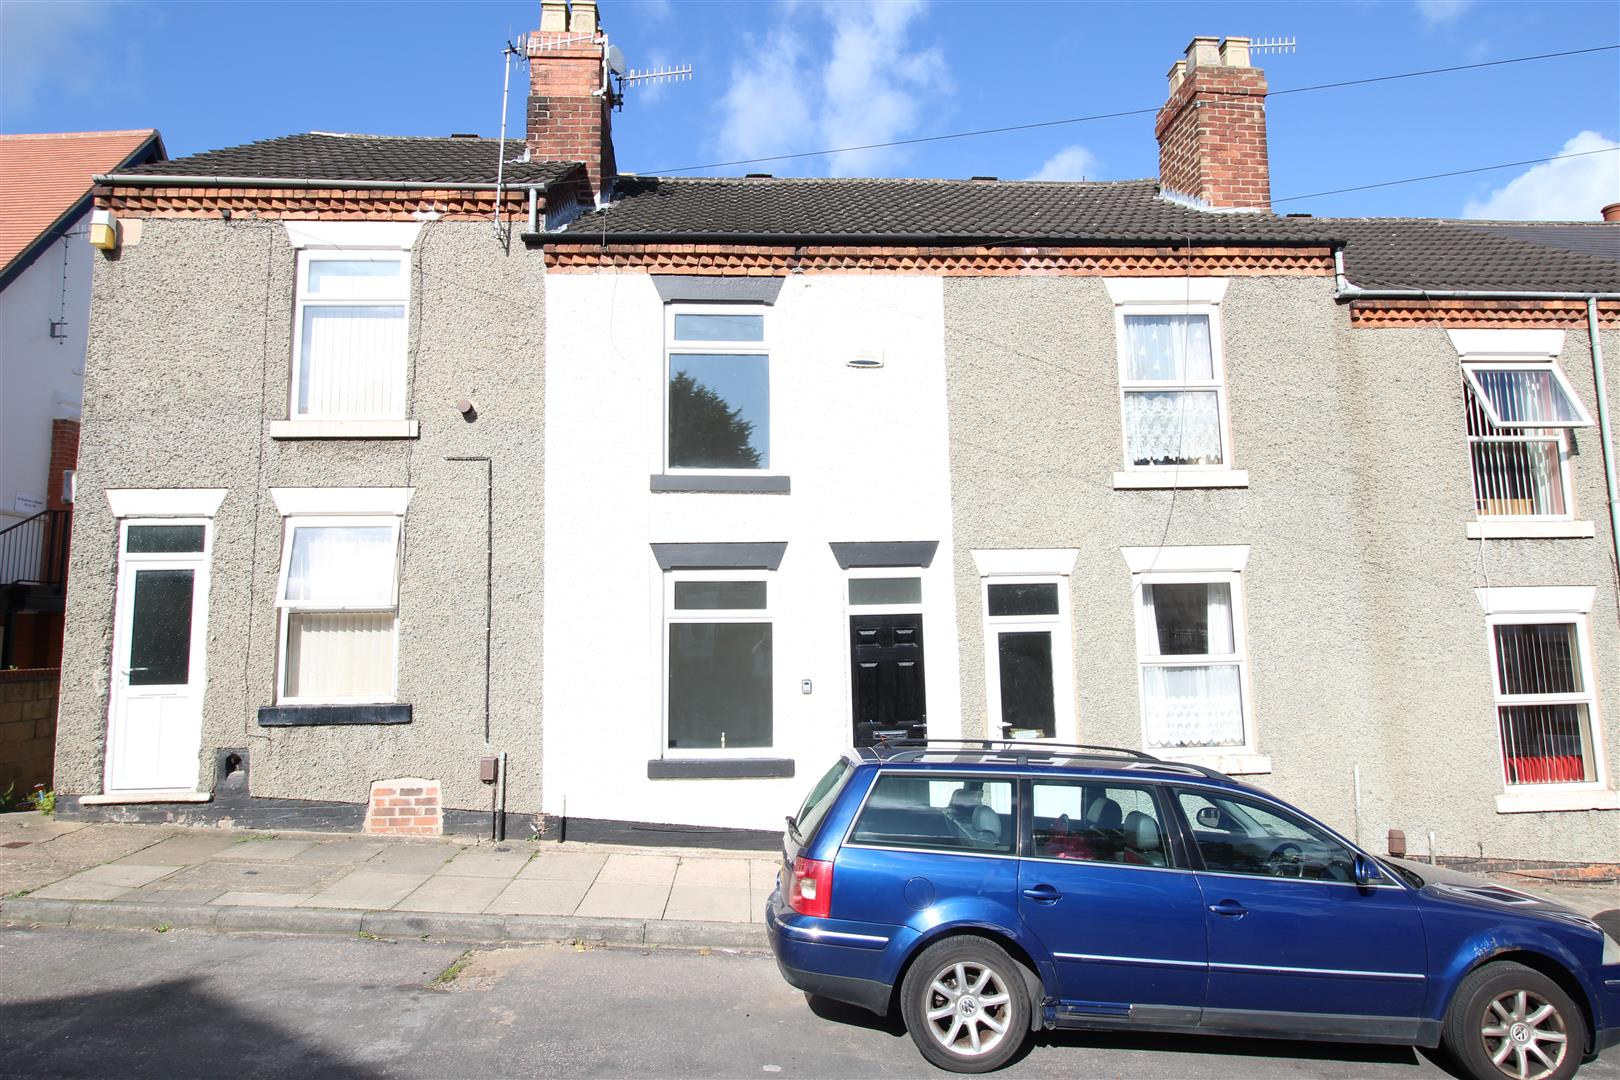 2 Bedrooms Terraced House for sale in Antill Street, Stapleford